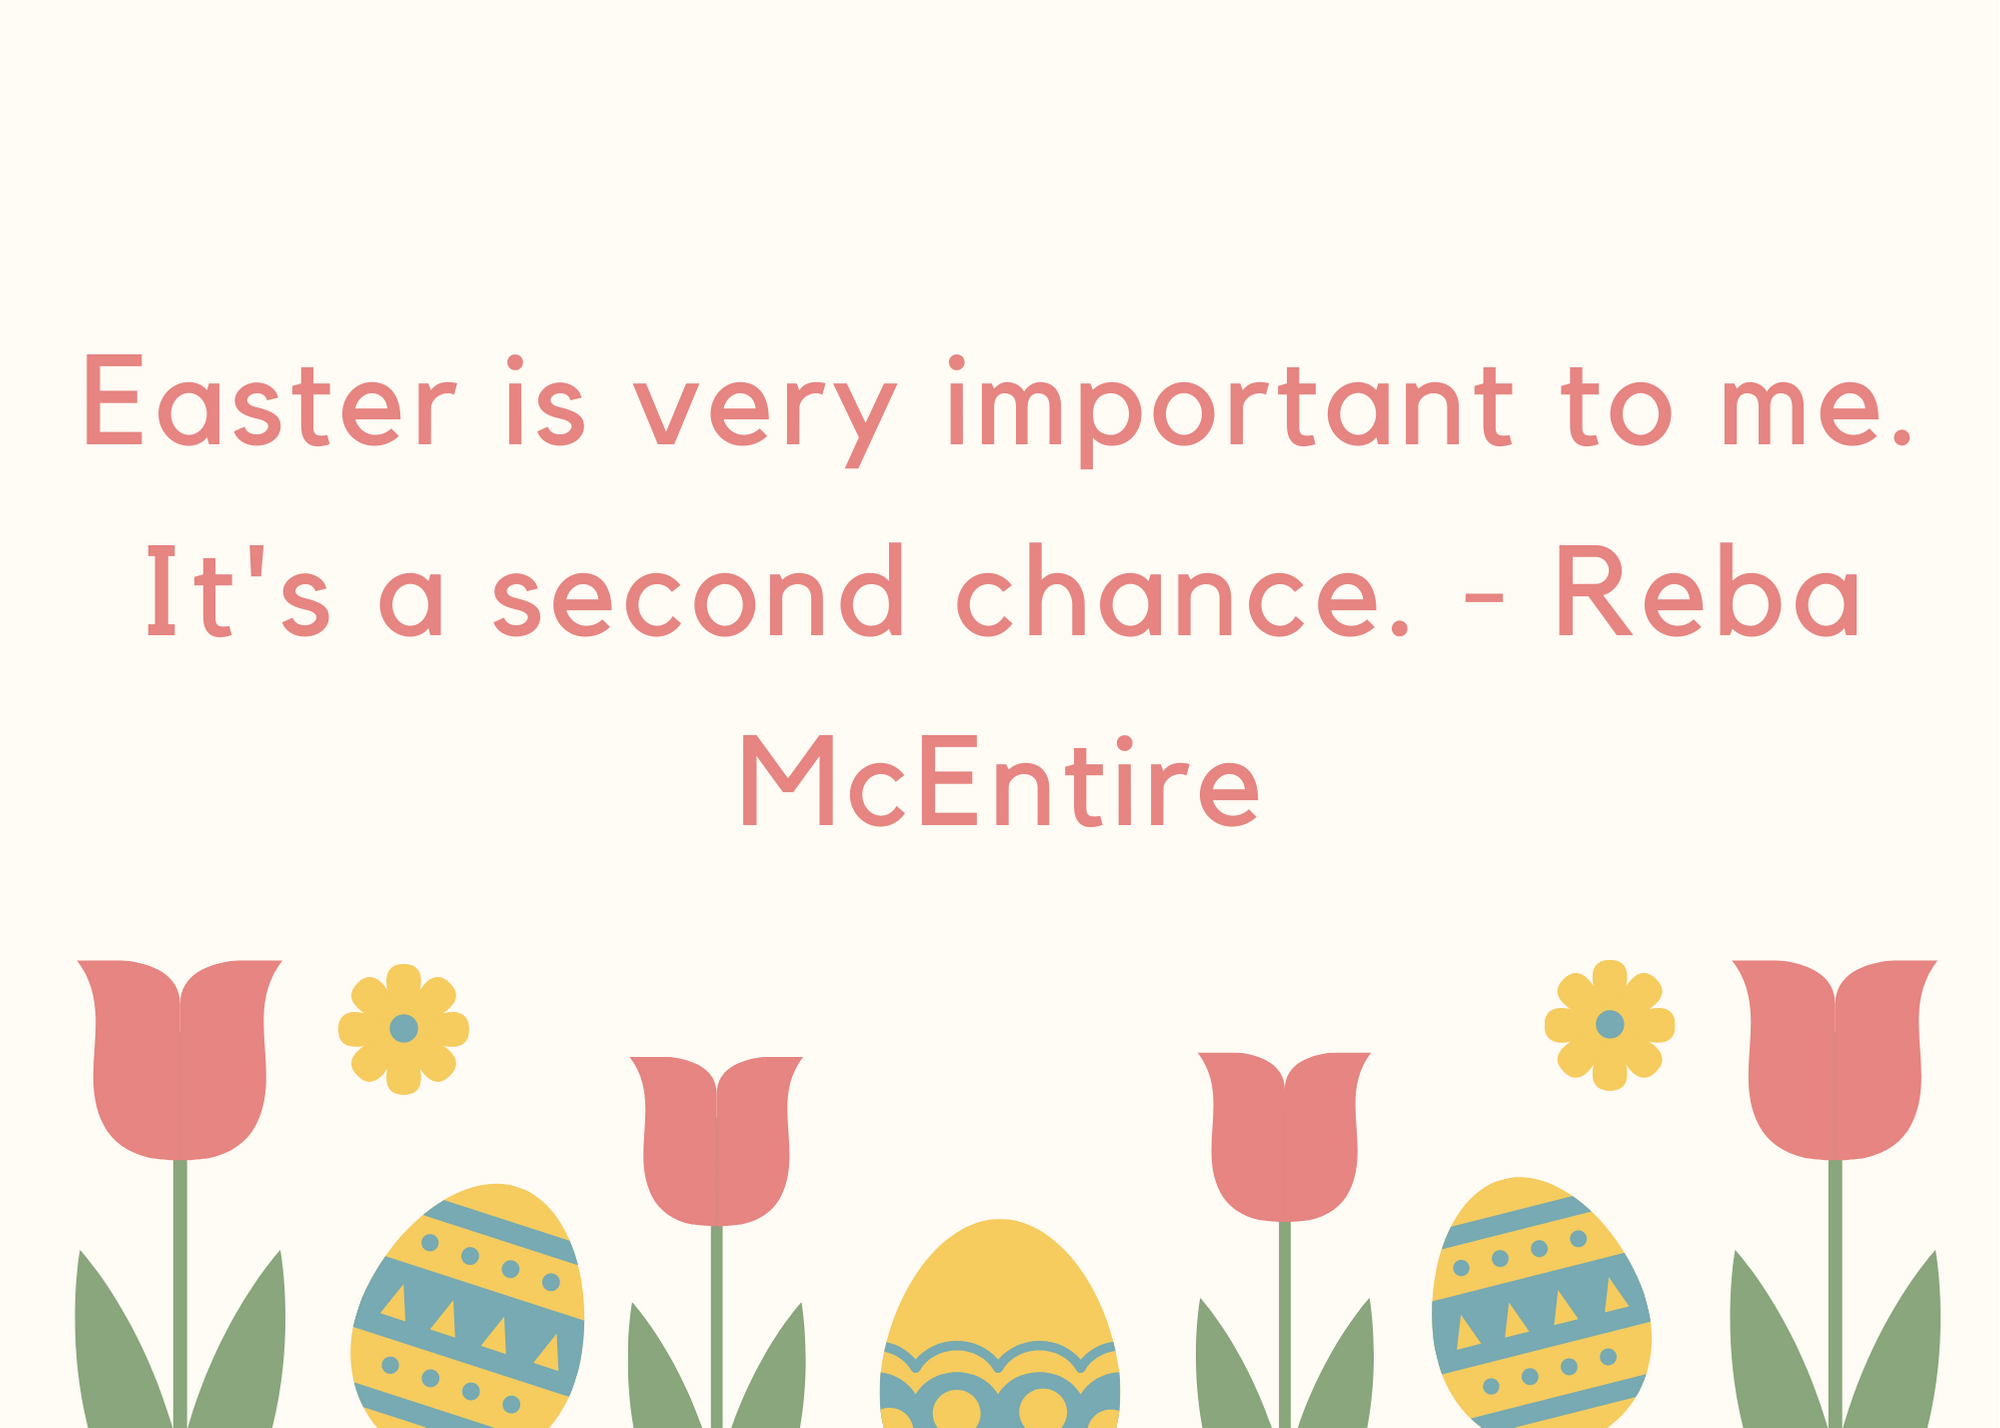 Easter is very important to me. It's a second chance. - Reba McEntire